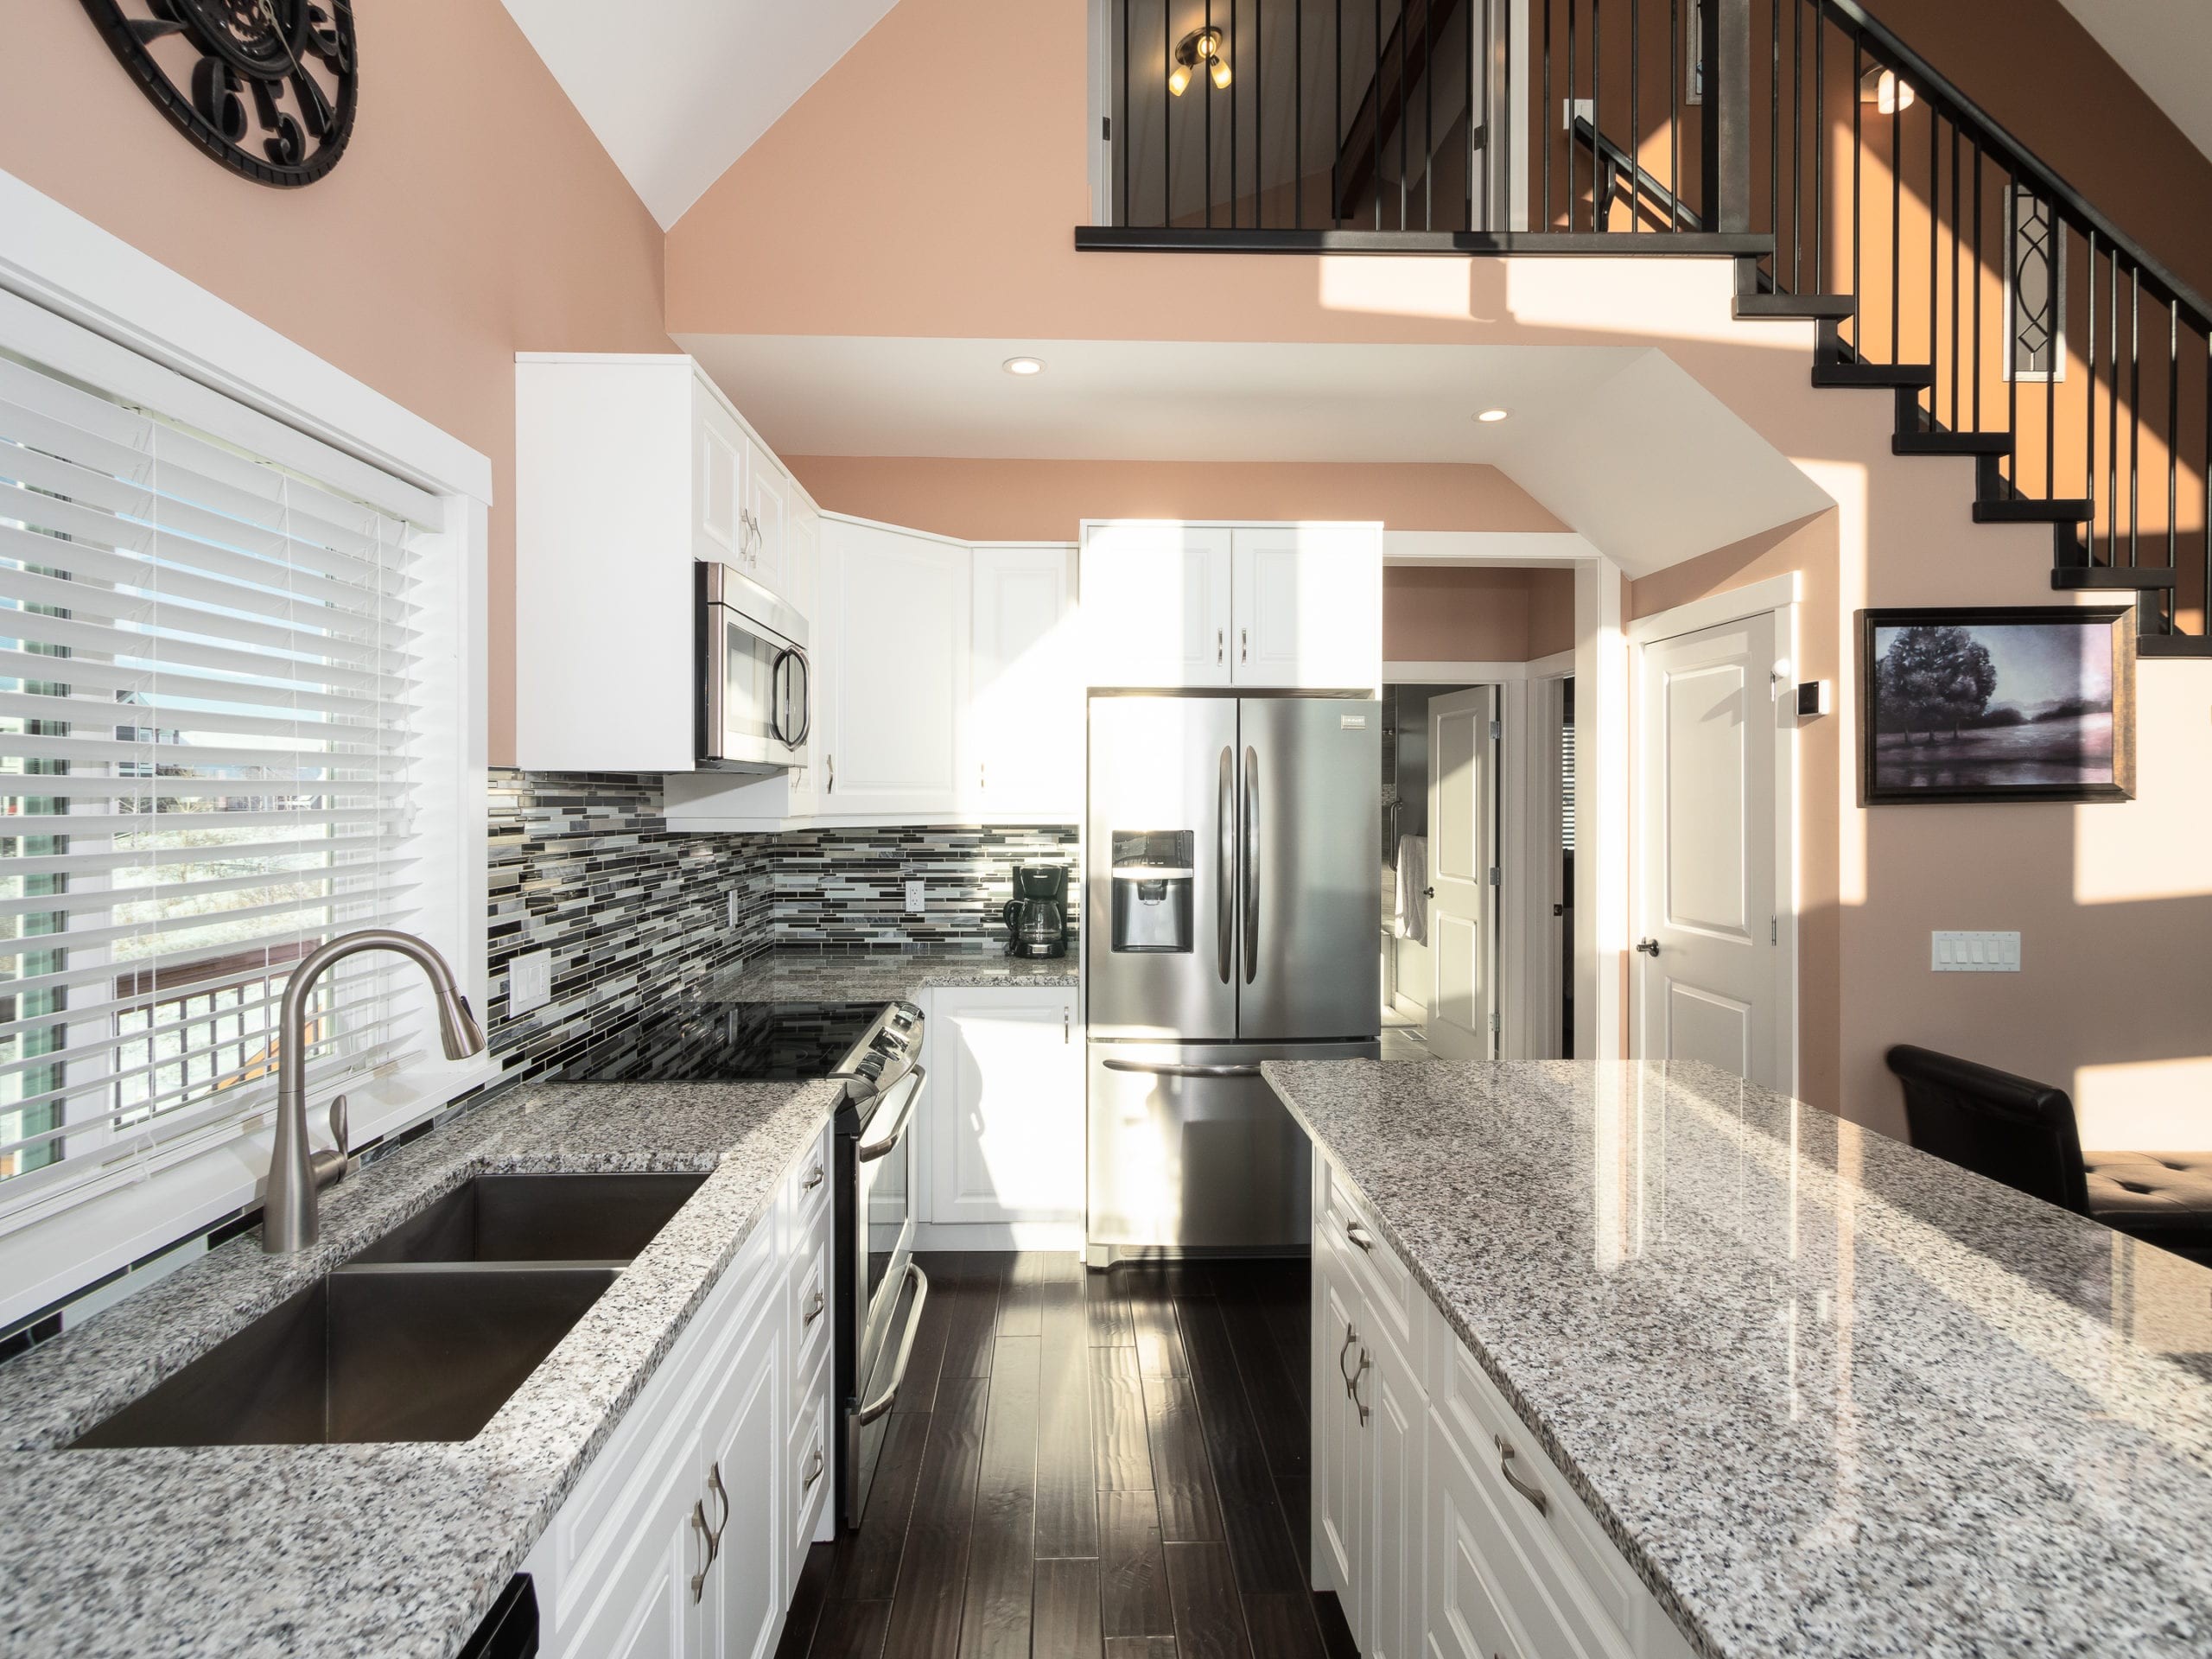 Hello Gorgeous - 456 Cottageclub Cove, Rocky View No. 44, AB - Tara Molina Real Estate (12 of 41)